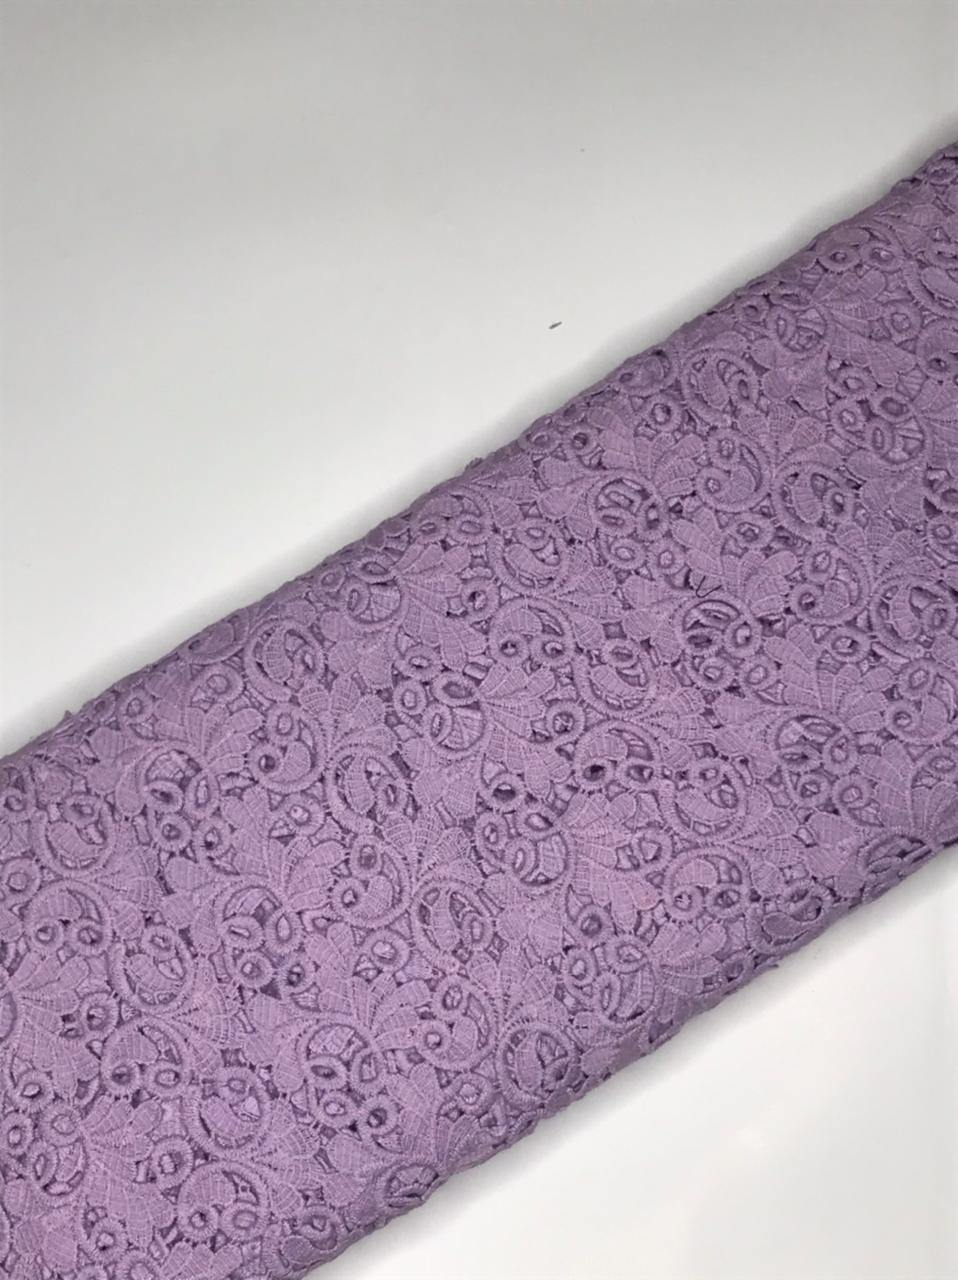 Lilac Crochet Lace Floral Fabric (Width - 44 inches)